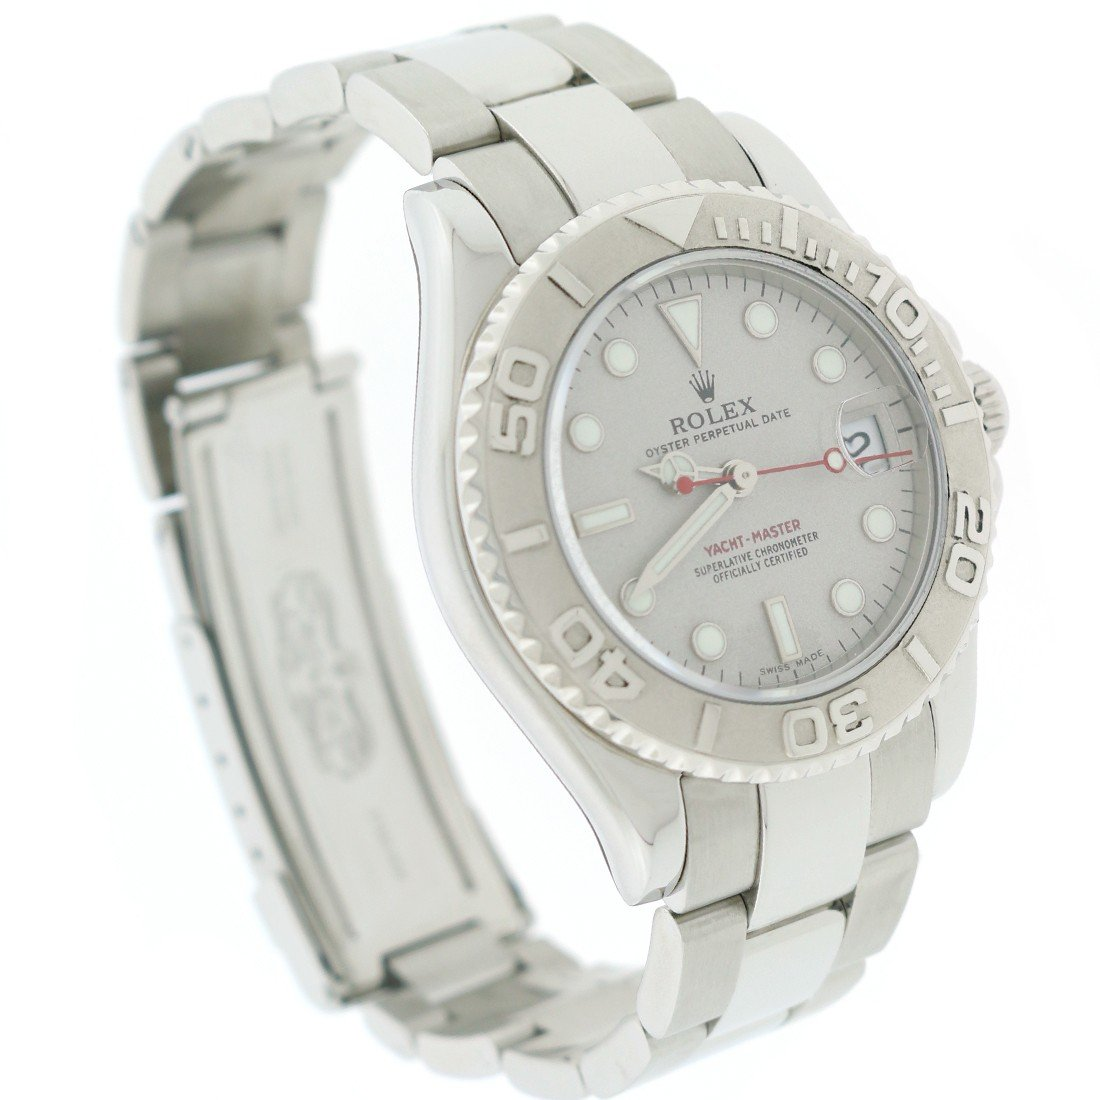 Rolex Yacht-Master automatic-self-wind mens Watch 168622 (Certified Pre-owned) by Rolex (Image #5)